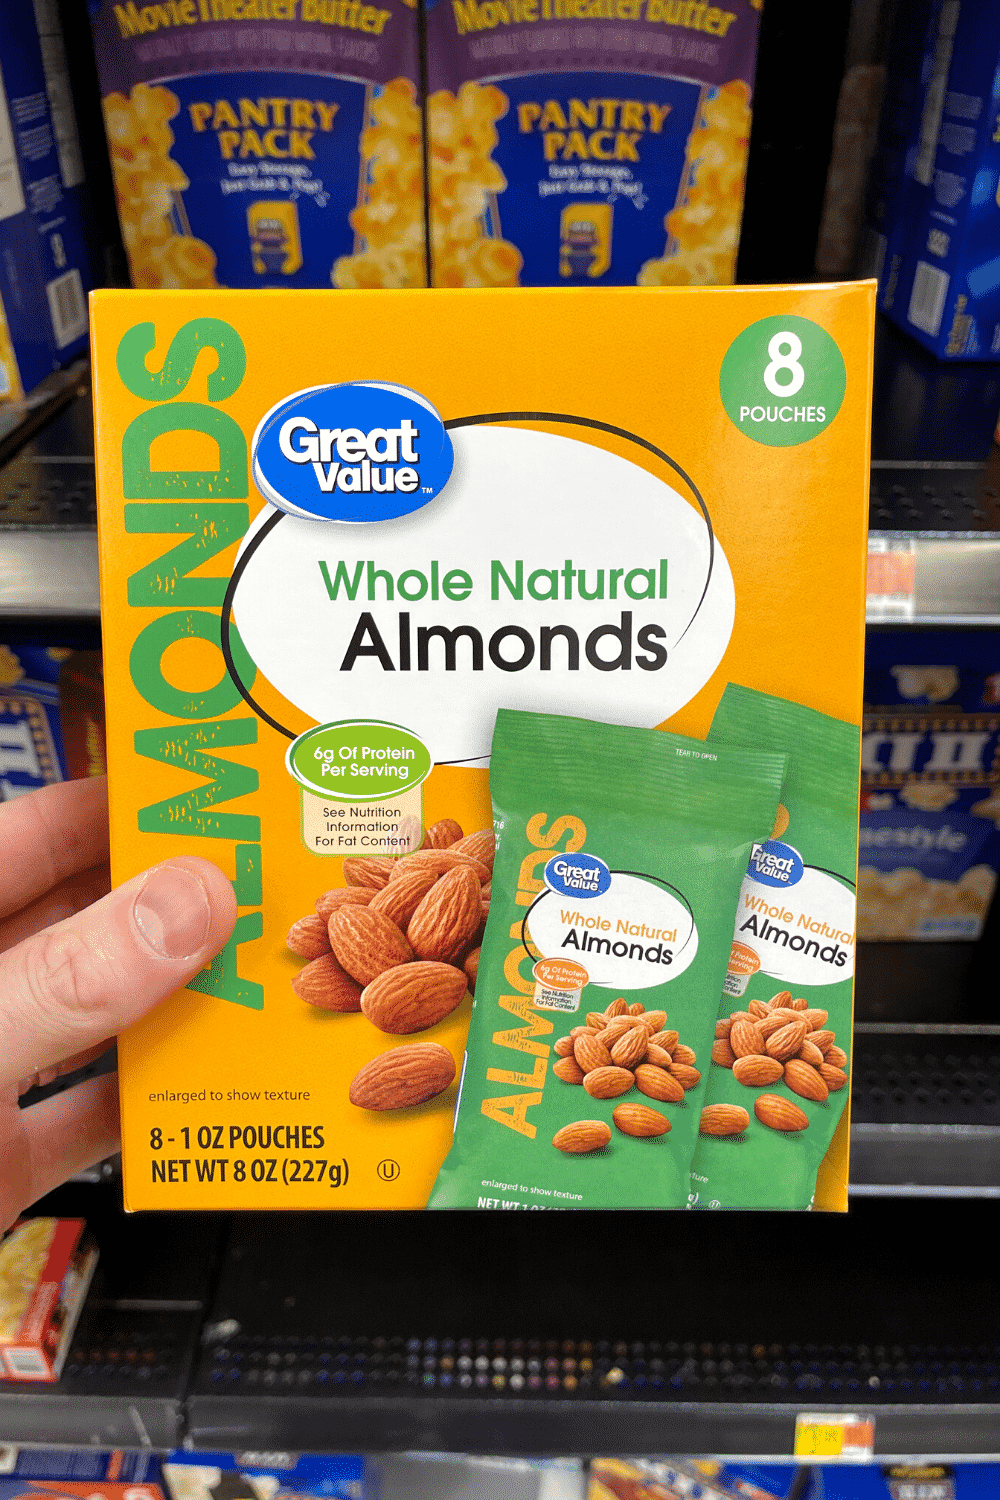 A hand holding a box of raw almond snack packs.